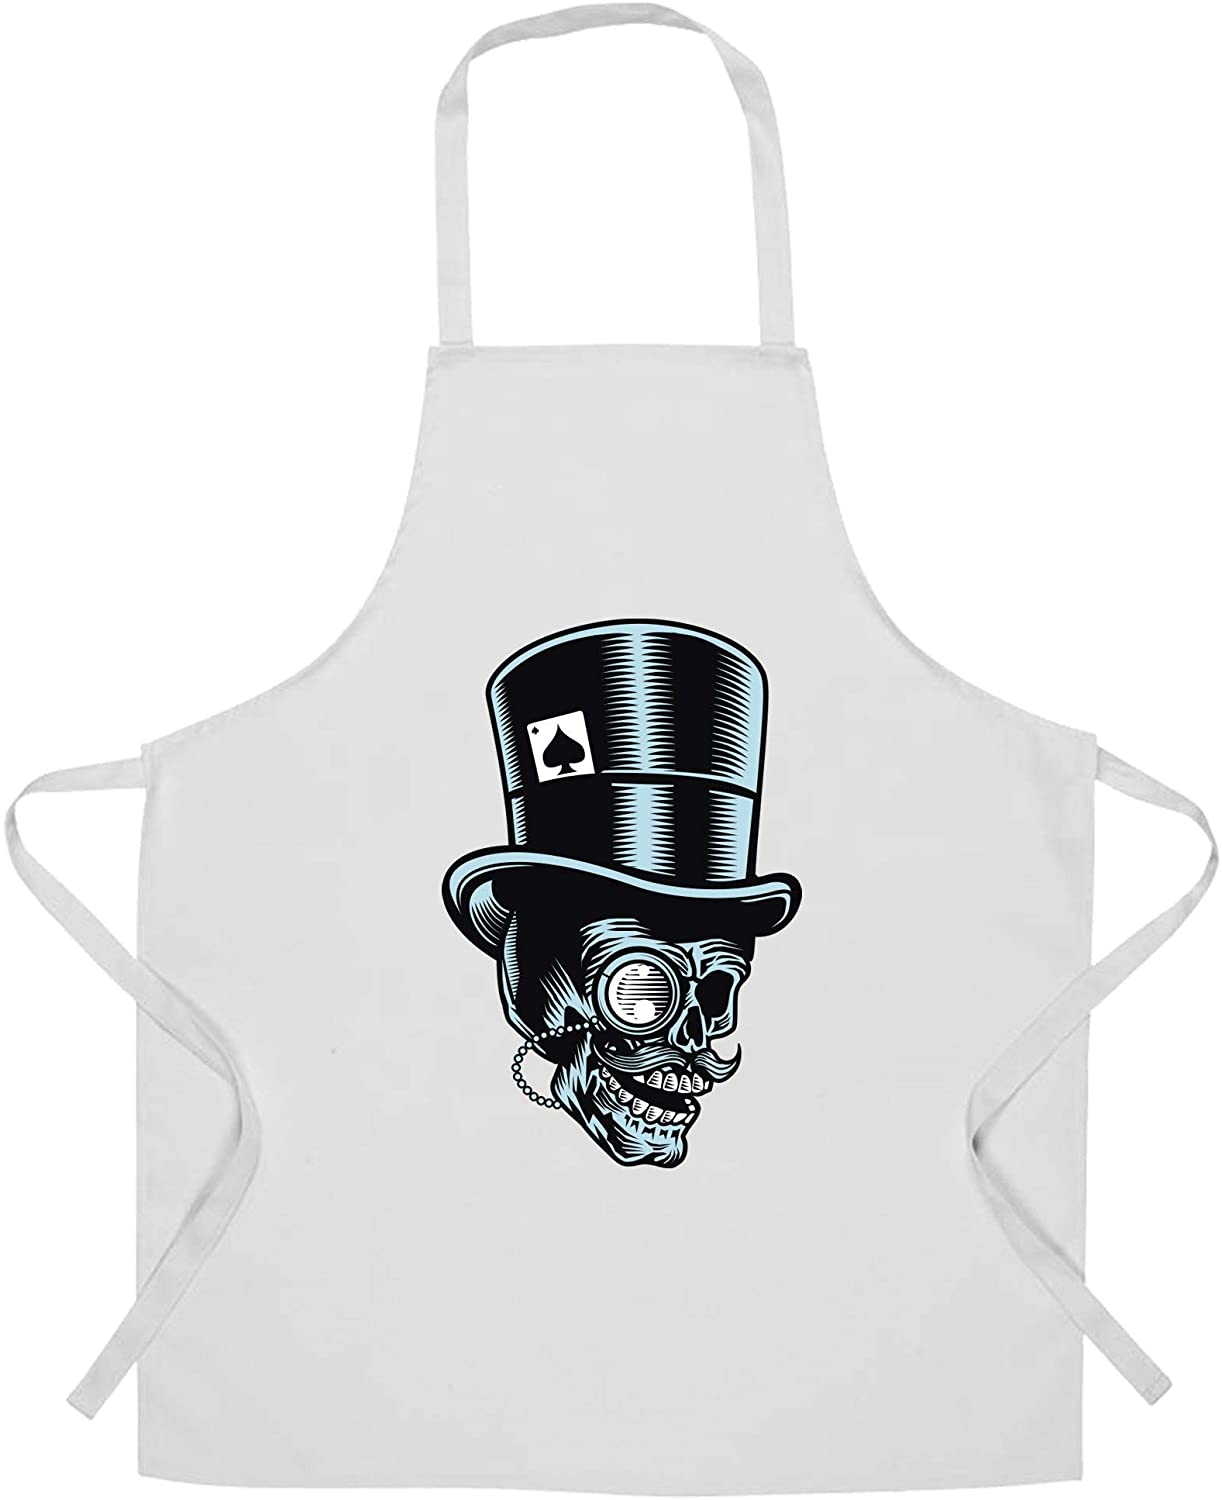 Skull Chef's Apron Undead Head With Top Hat White One Size